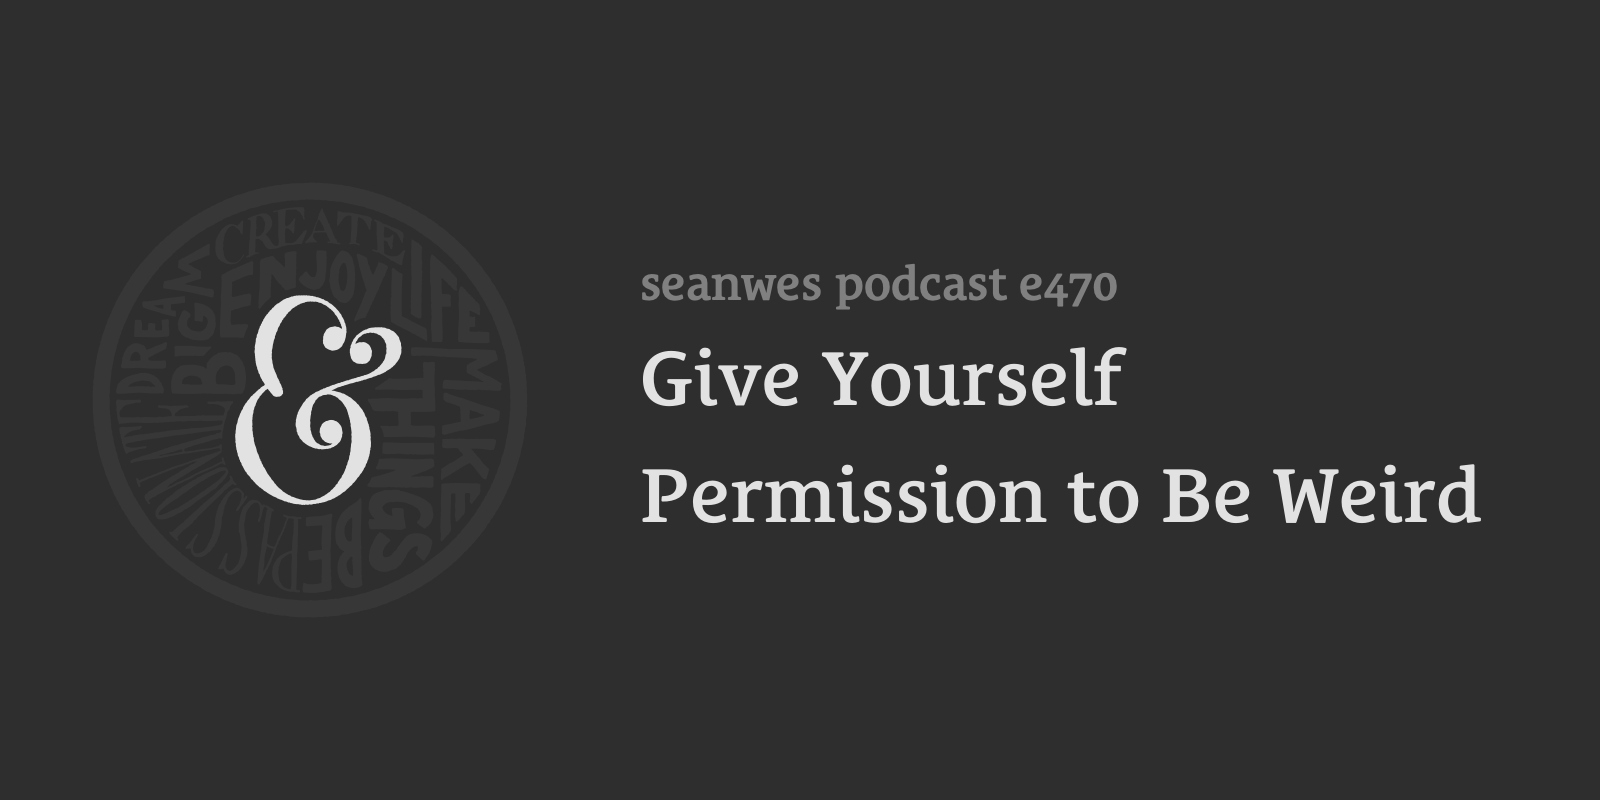 Give Yourself Permission to Be Weird